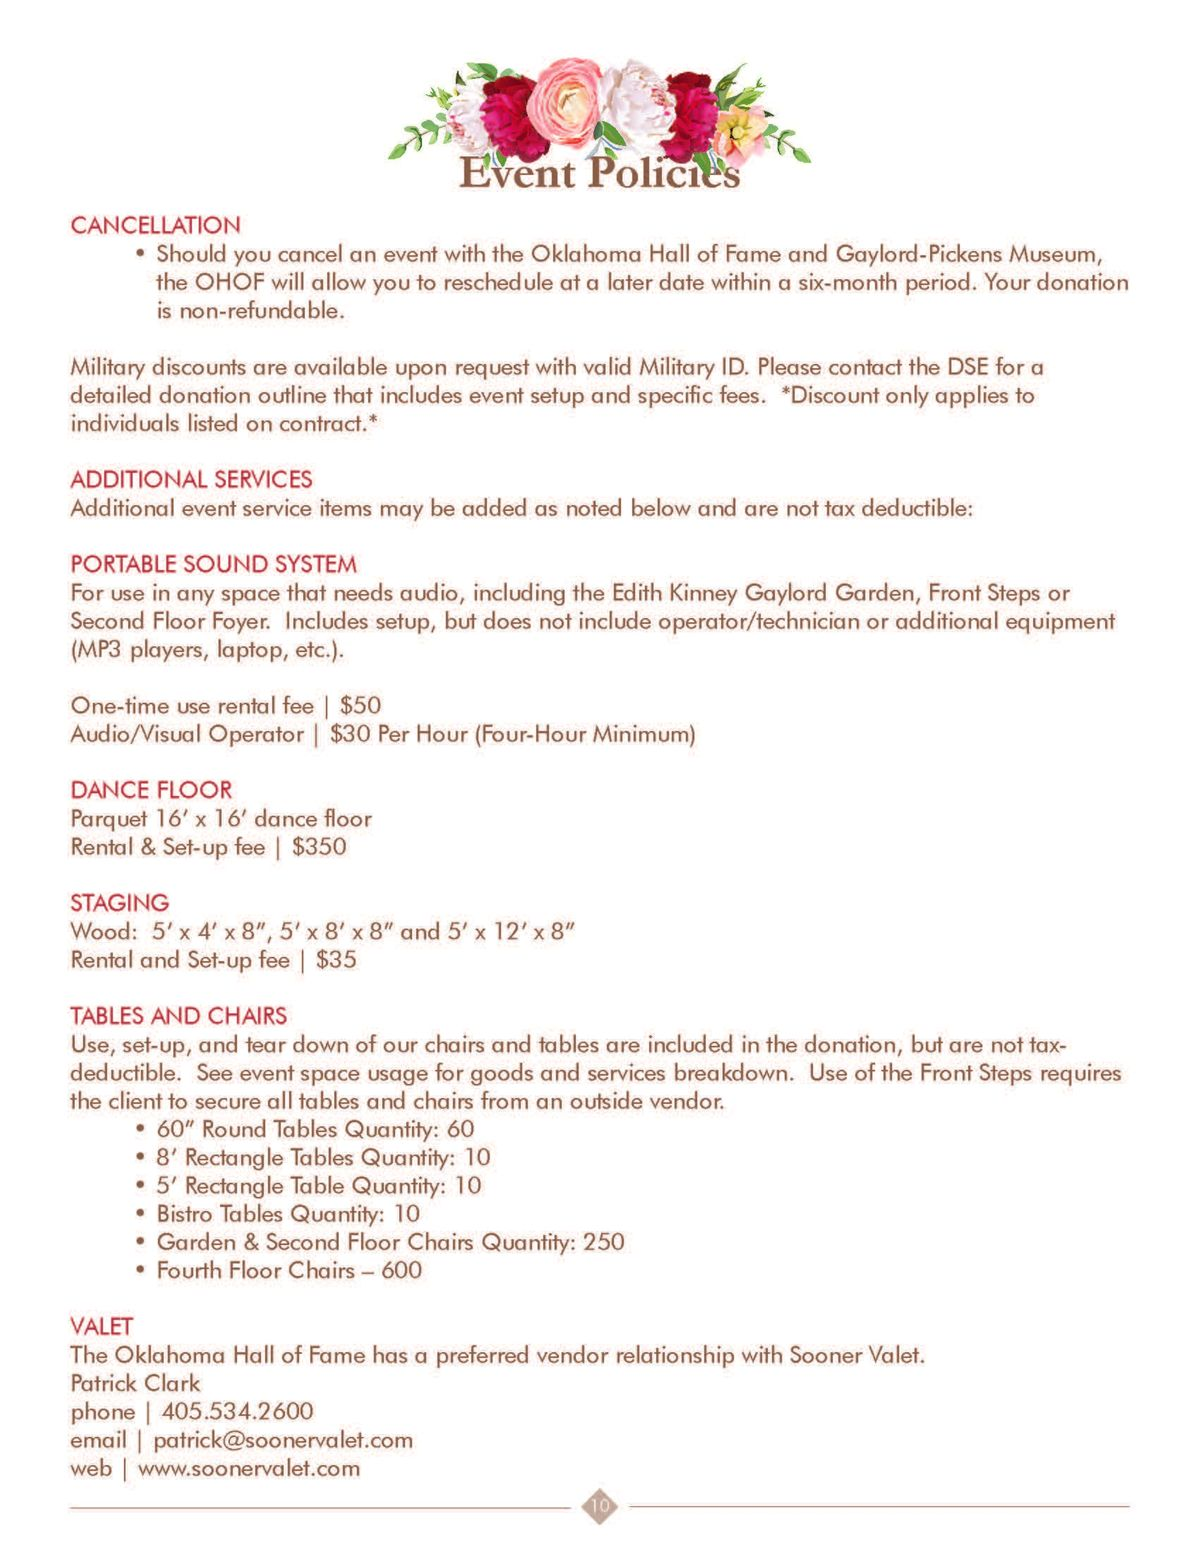 Wedding Information Packet February 2019_Page_10.jpg